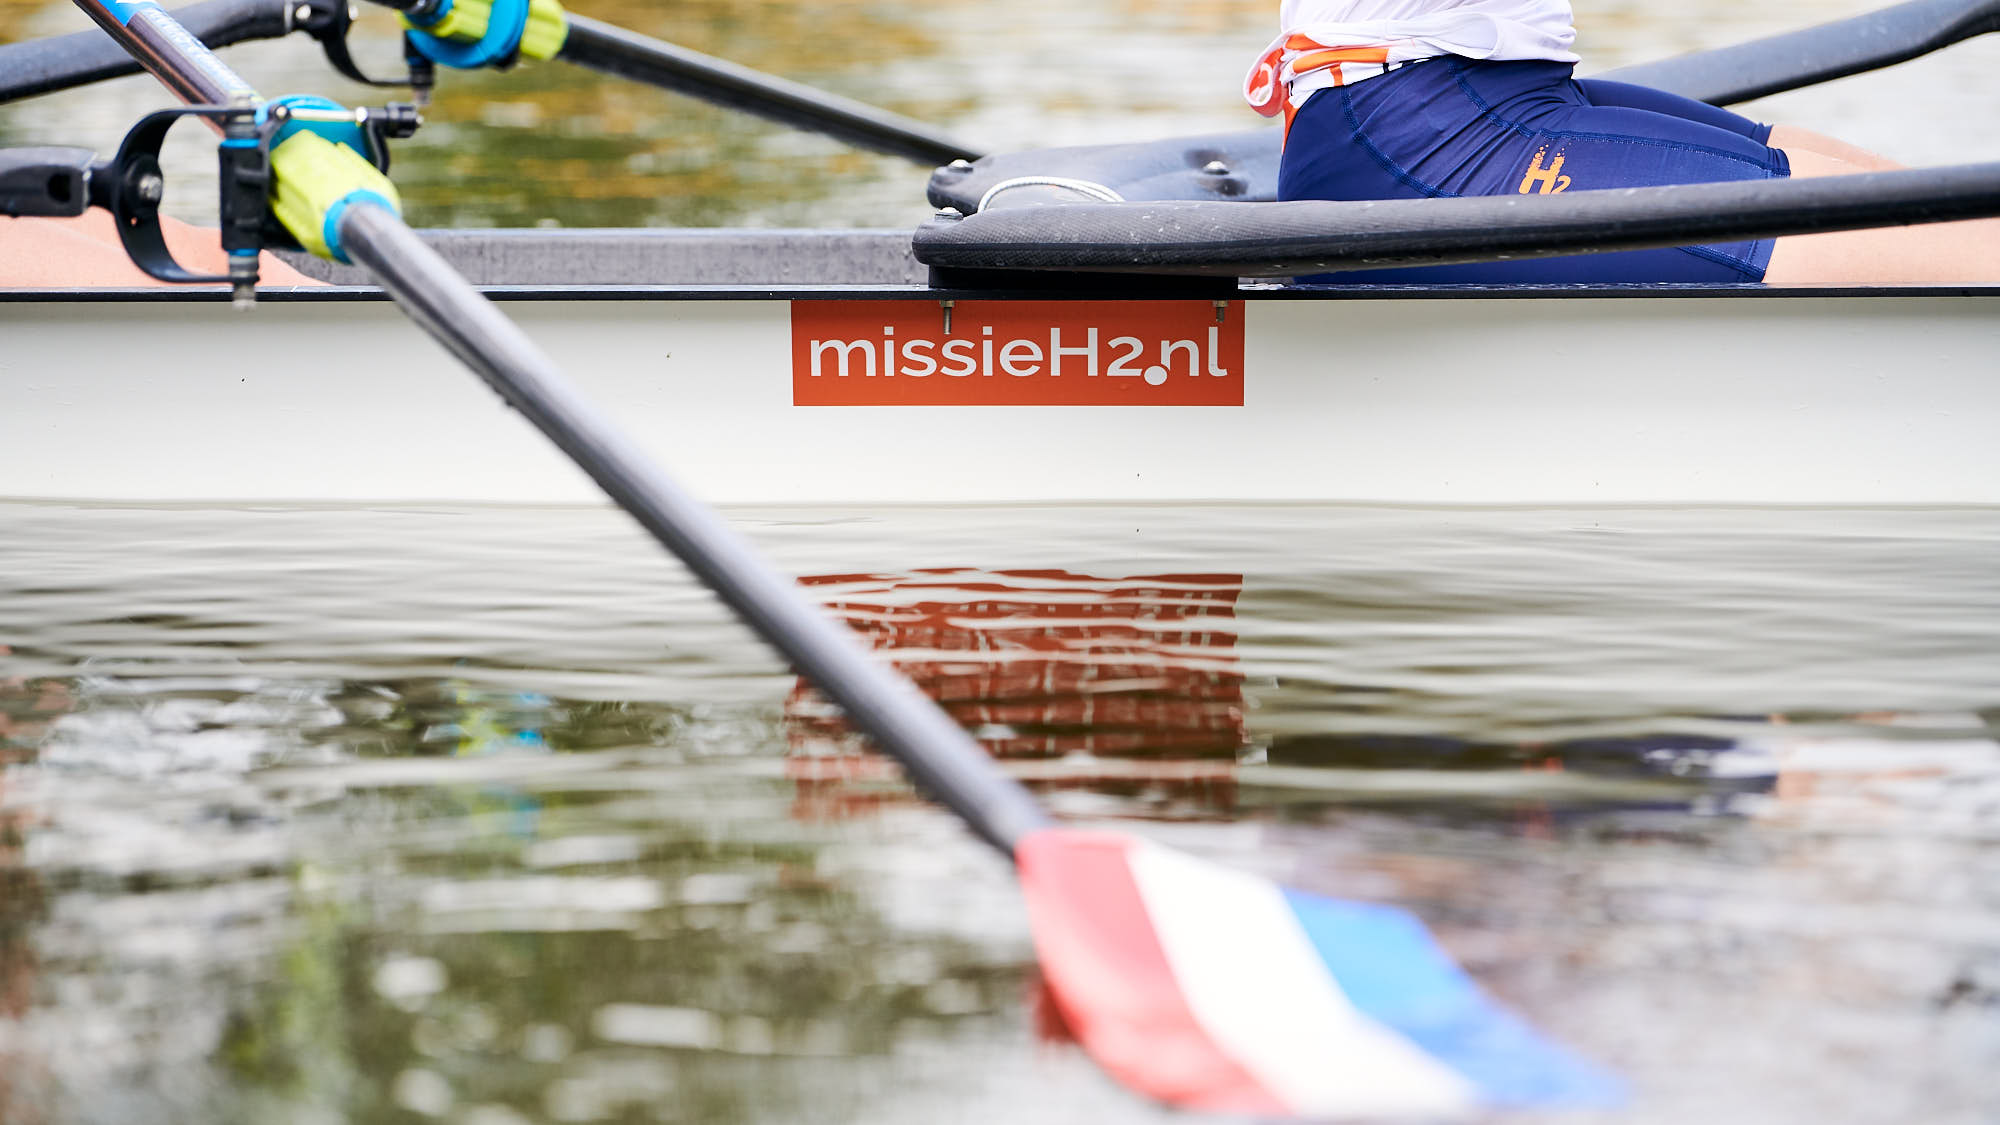 Close-up of MissieH2 logo on a boat